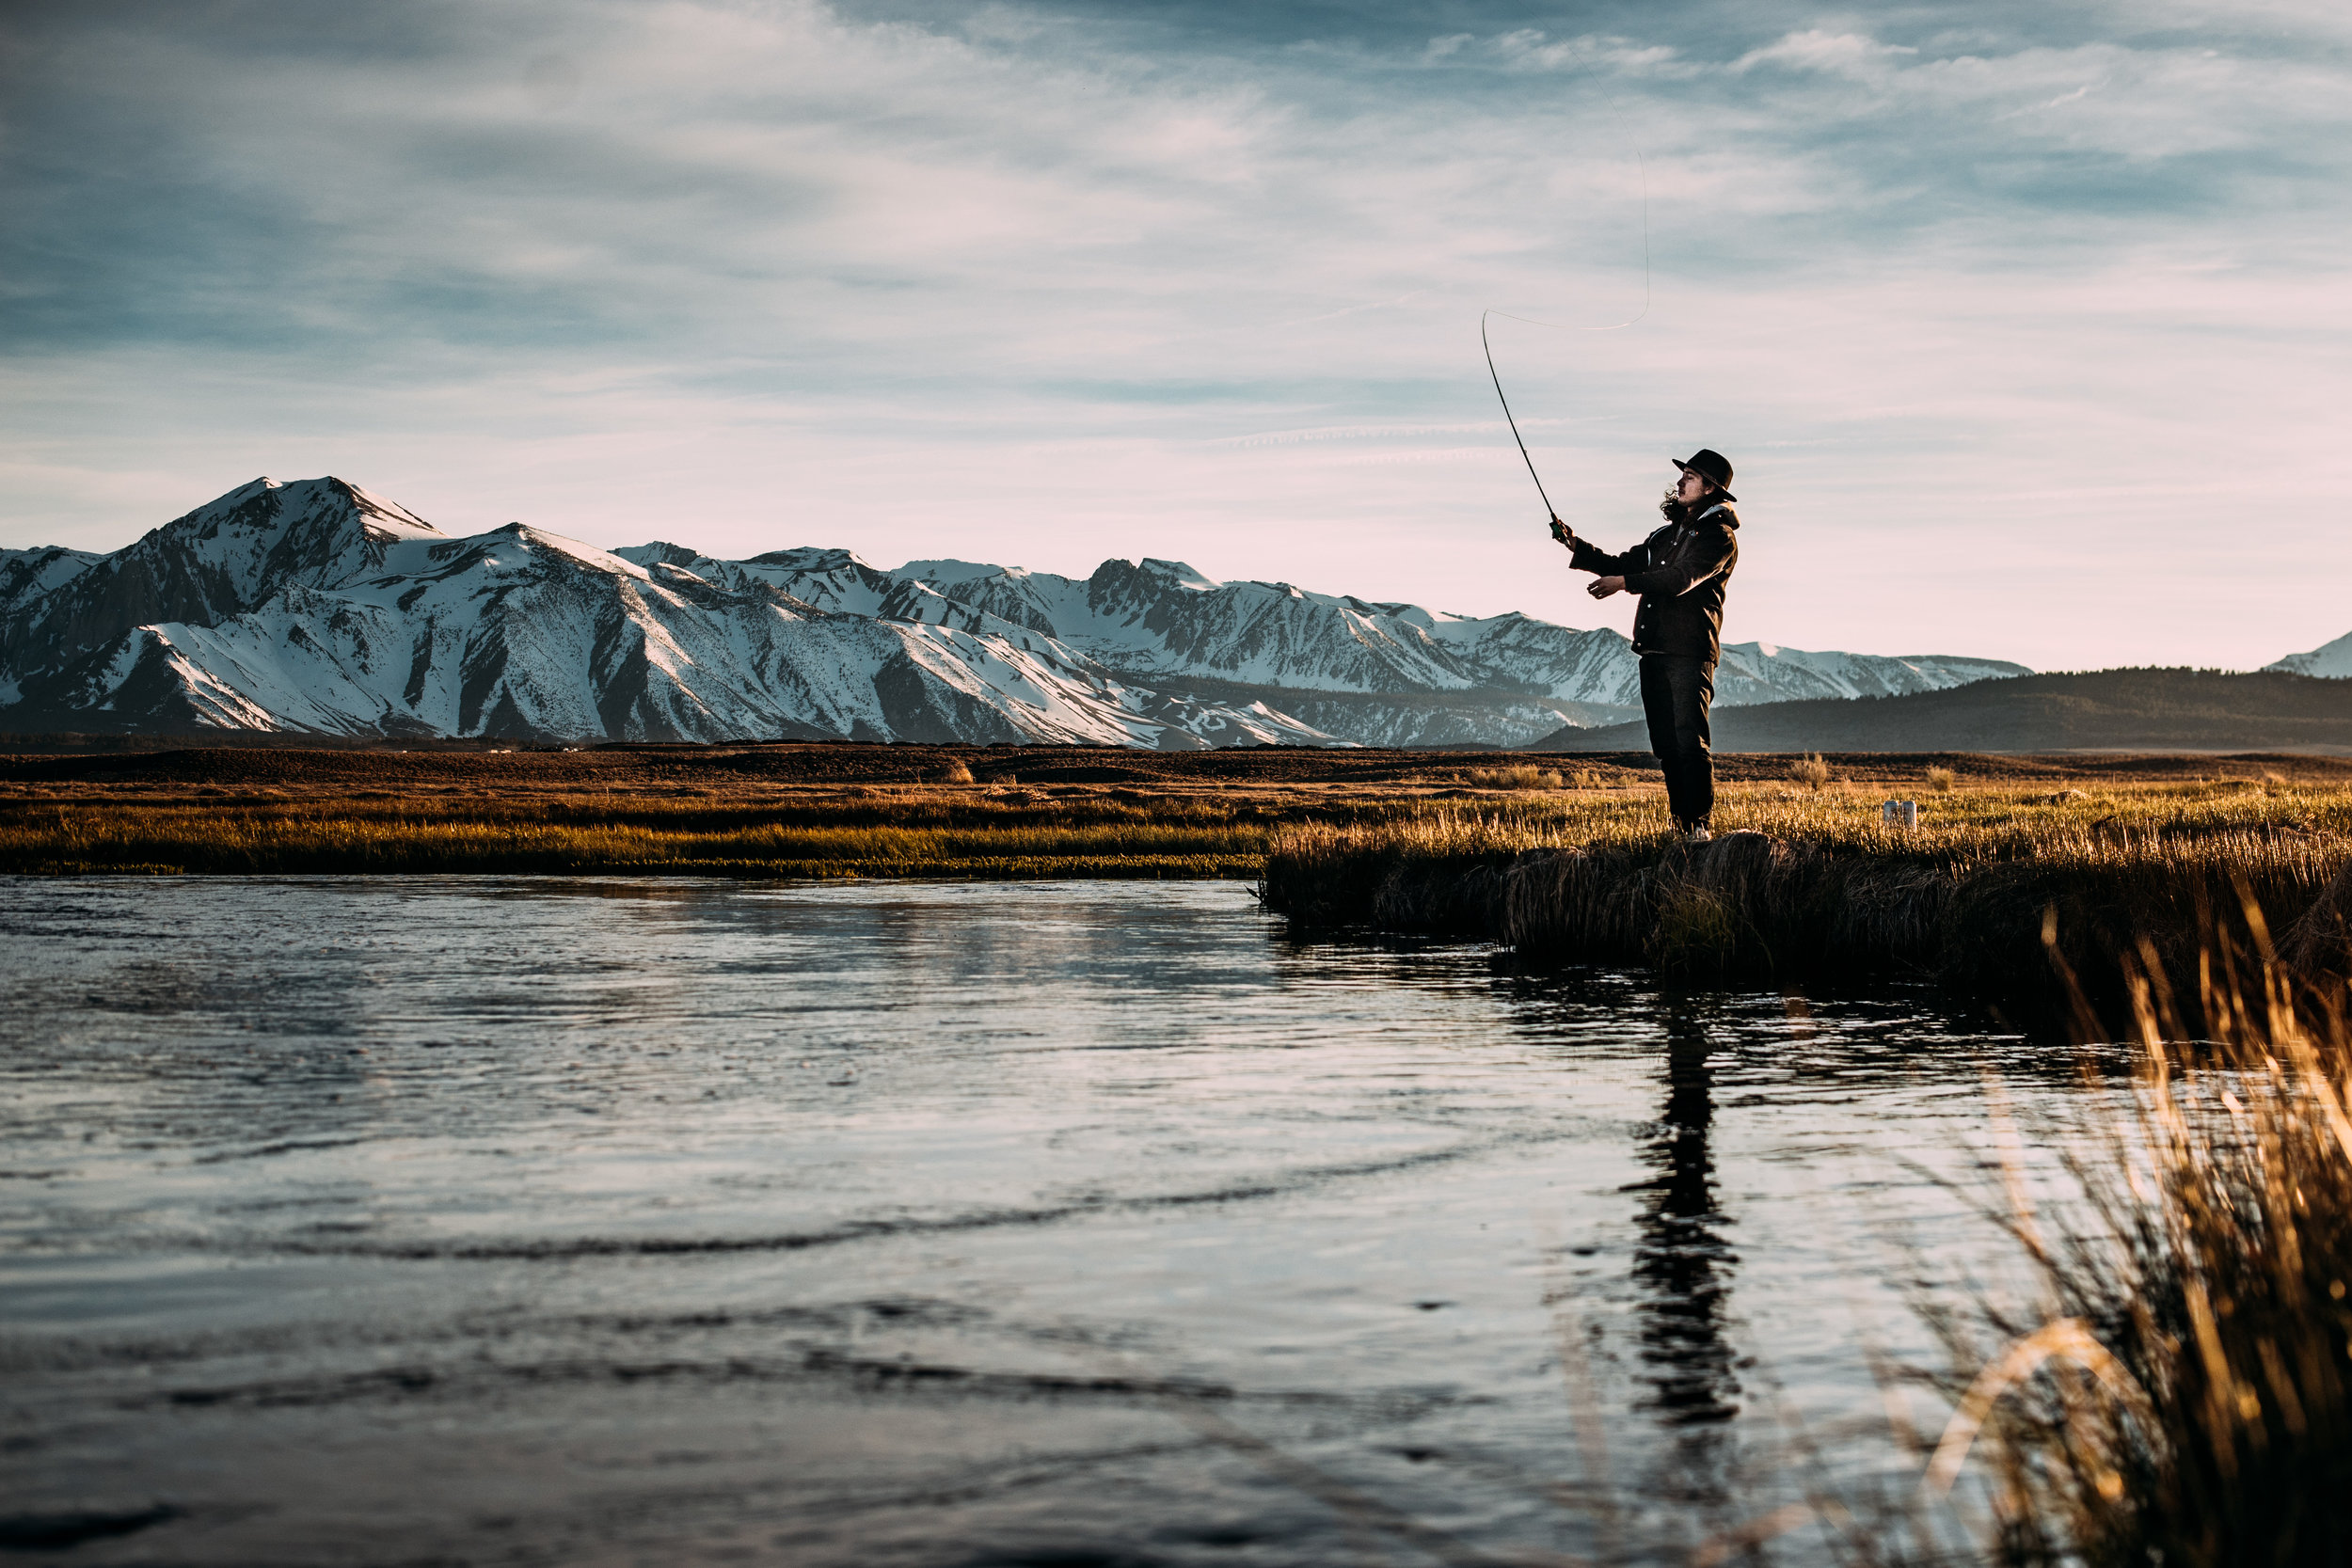 Fishing is a good, wholesome activity, and many of the apostles were fishermen, but any activity, regardless of how wholesome, becomes bad when we allow it to take the place of God.